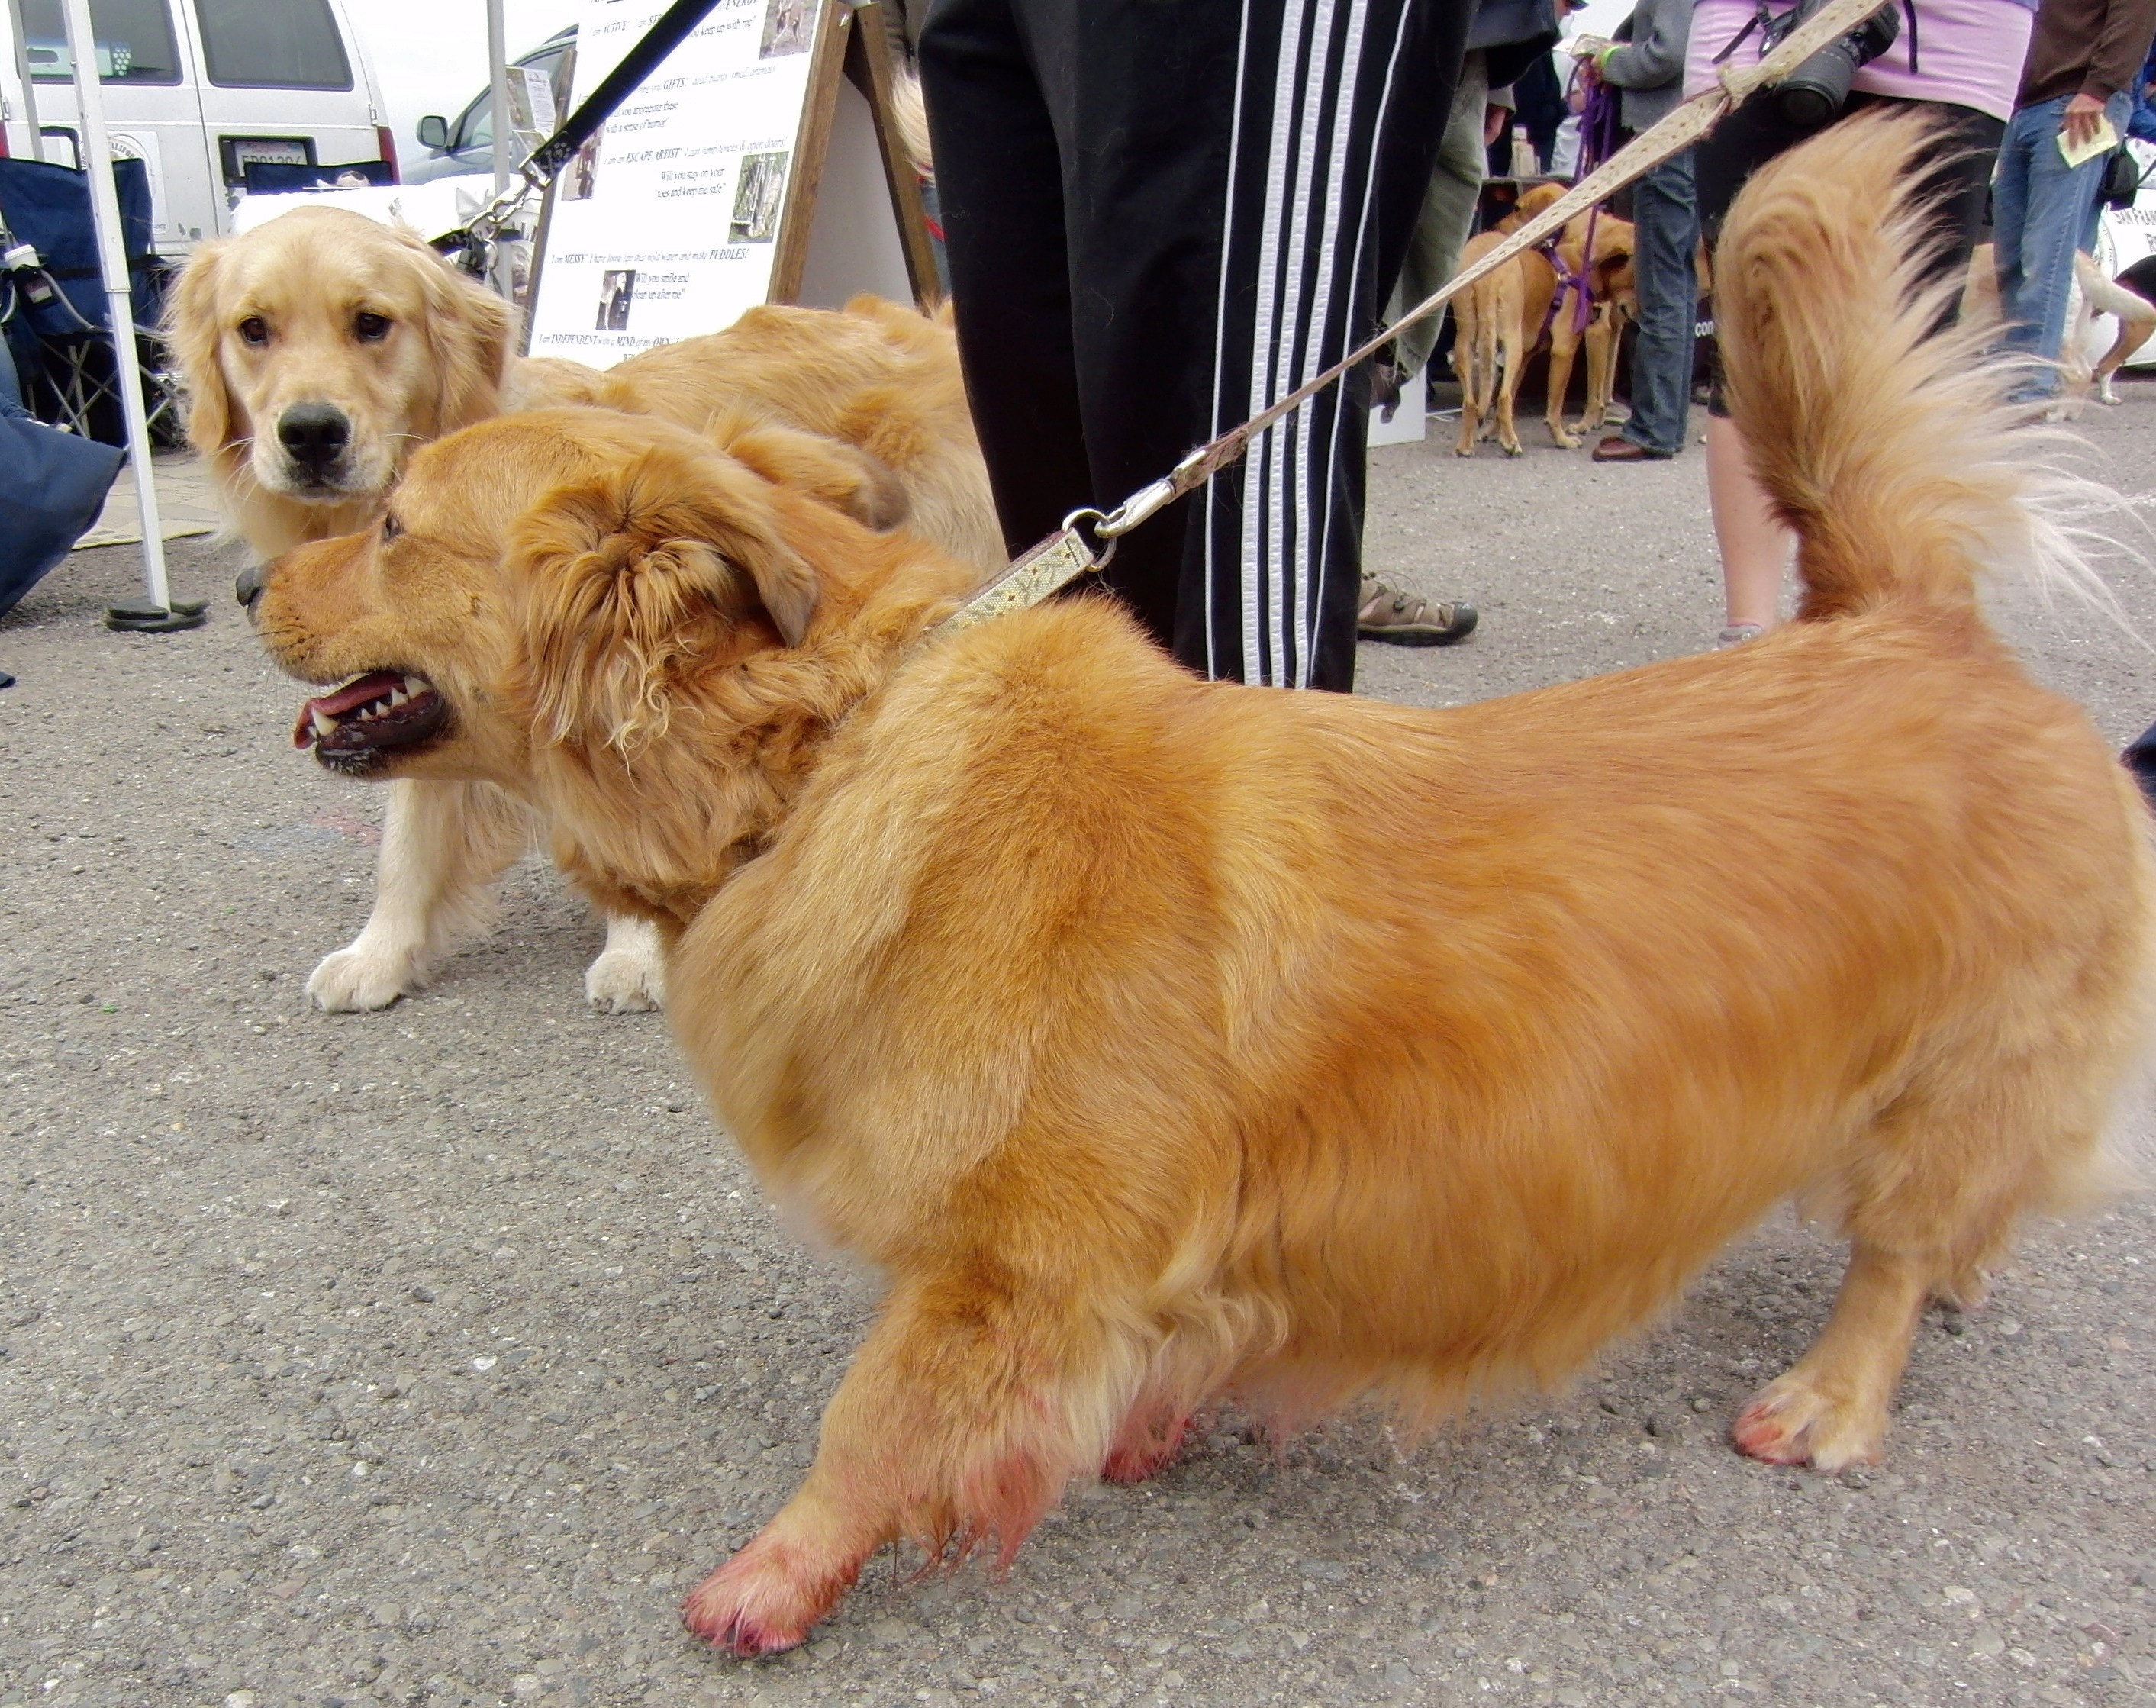 Corgi/Golden Retriever and Golden Retriever